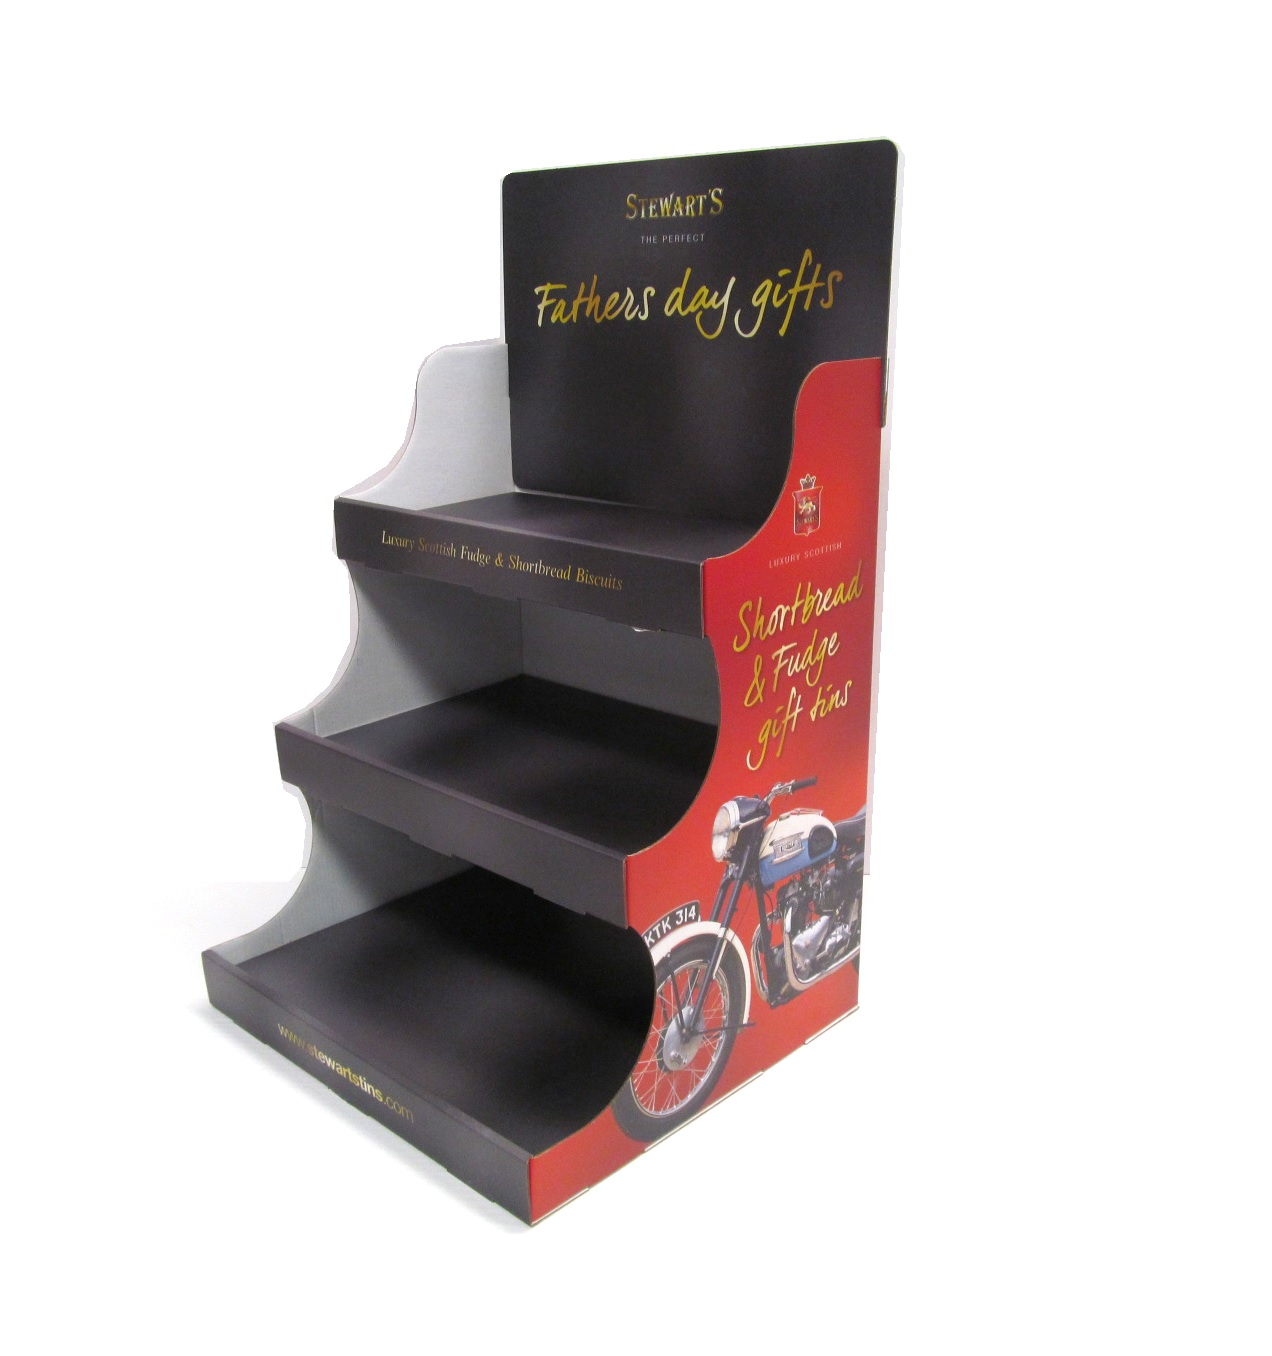 Countertop Displays Cardboard Www Fsdu Co Uk Specialising In Point Of Sale Print And Display